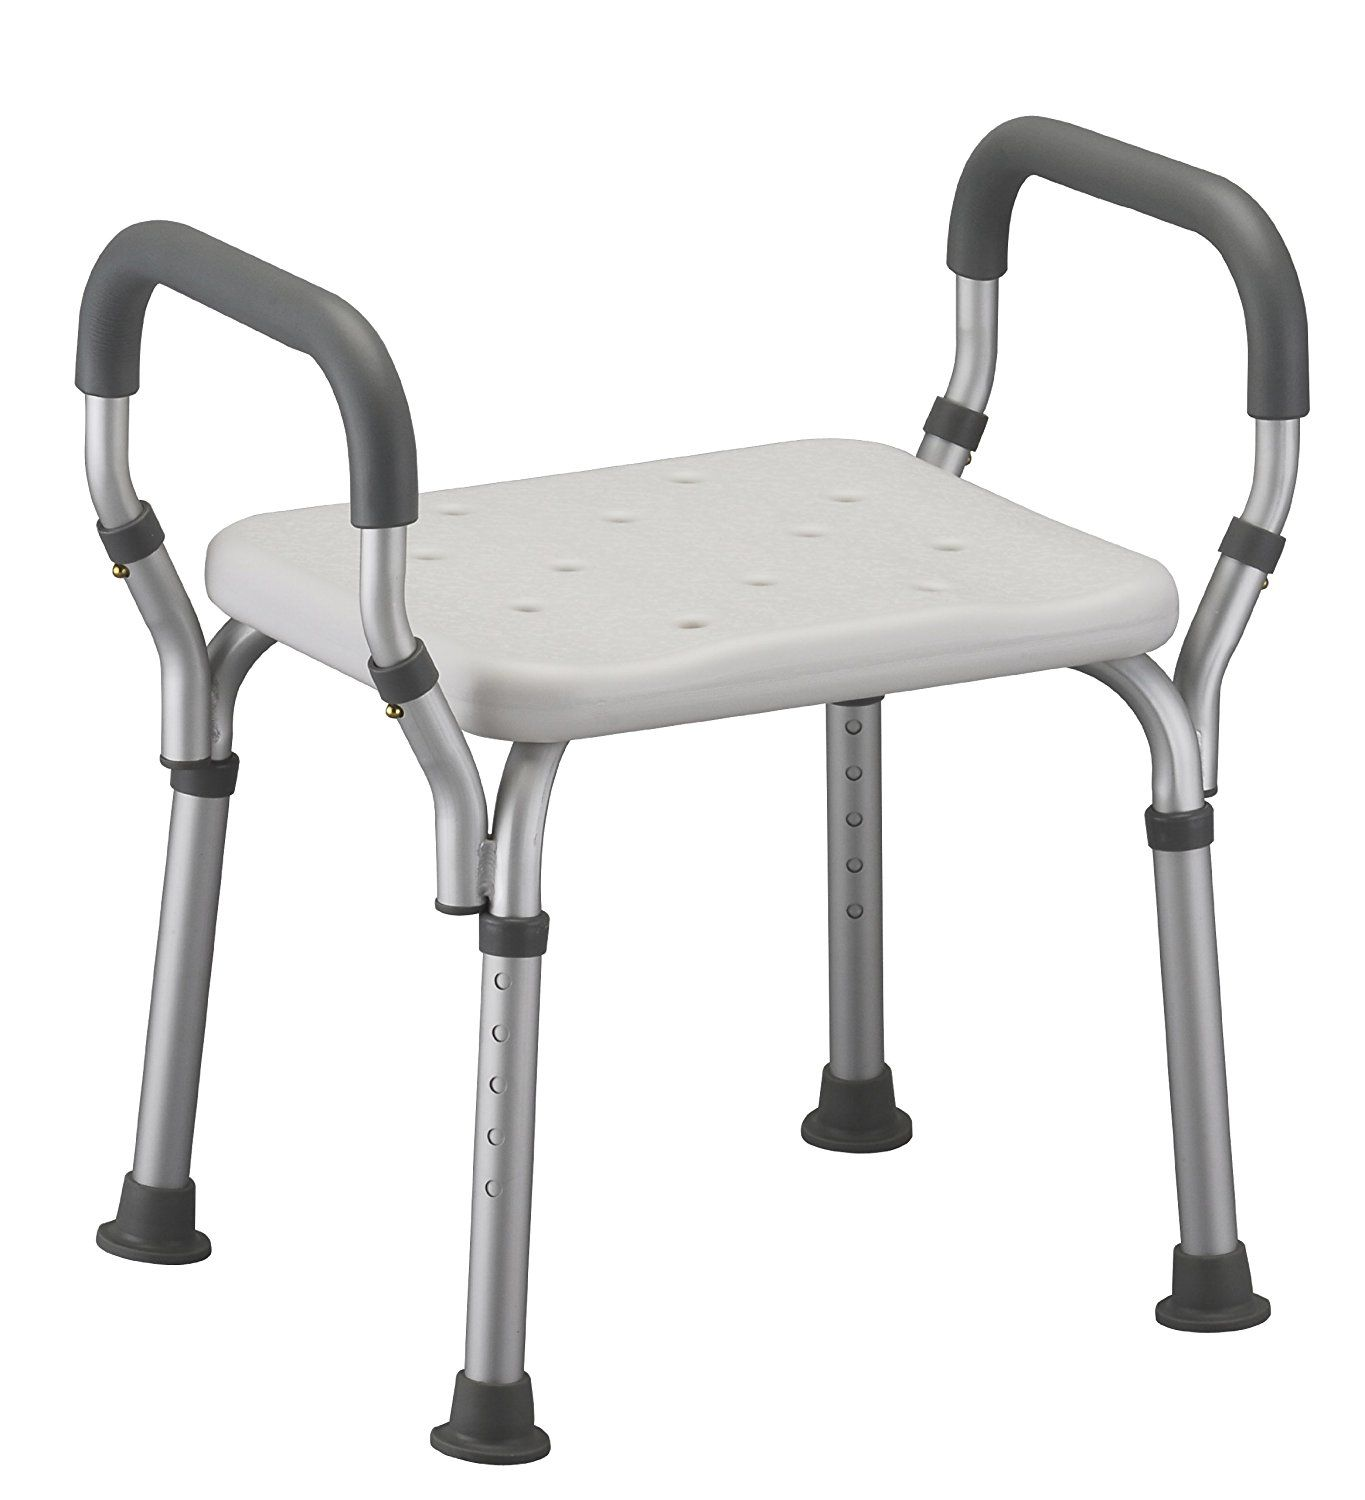 NOVA Medical Products Deluxe Bath Seat with Arms * For more ...